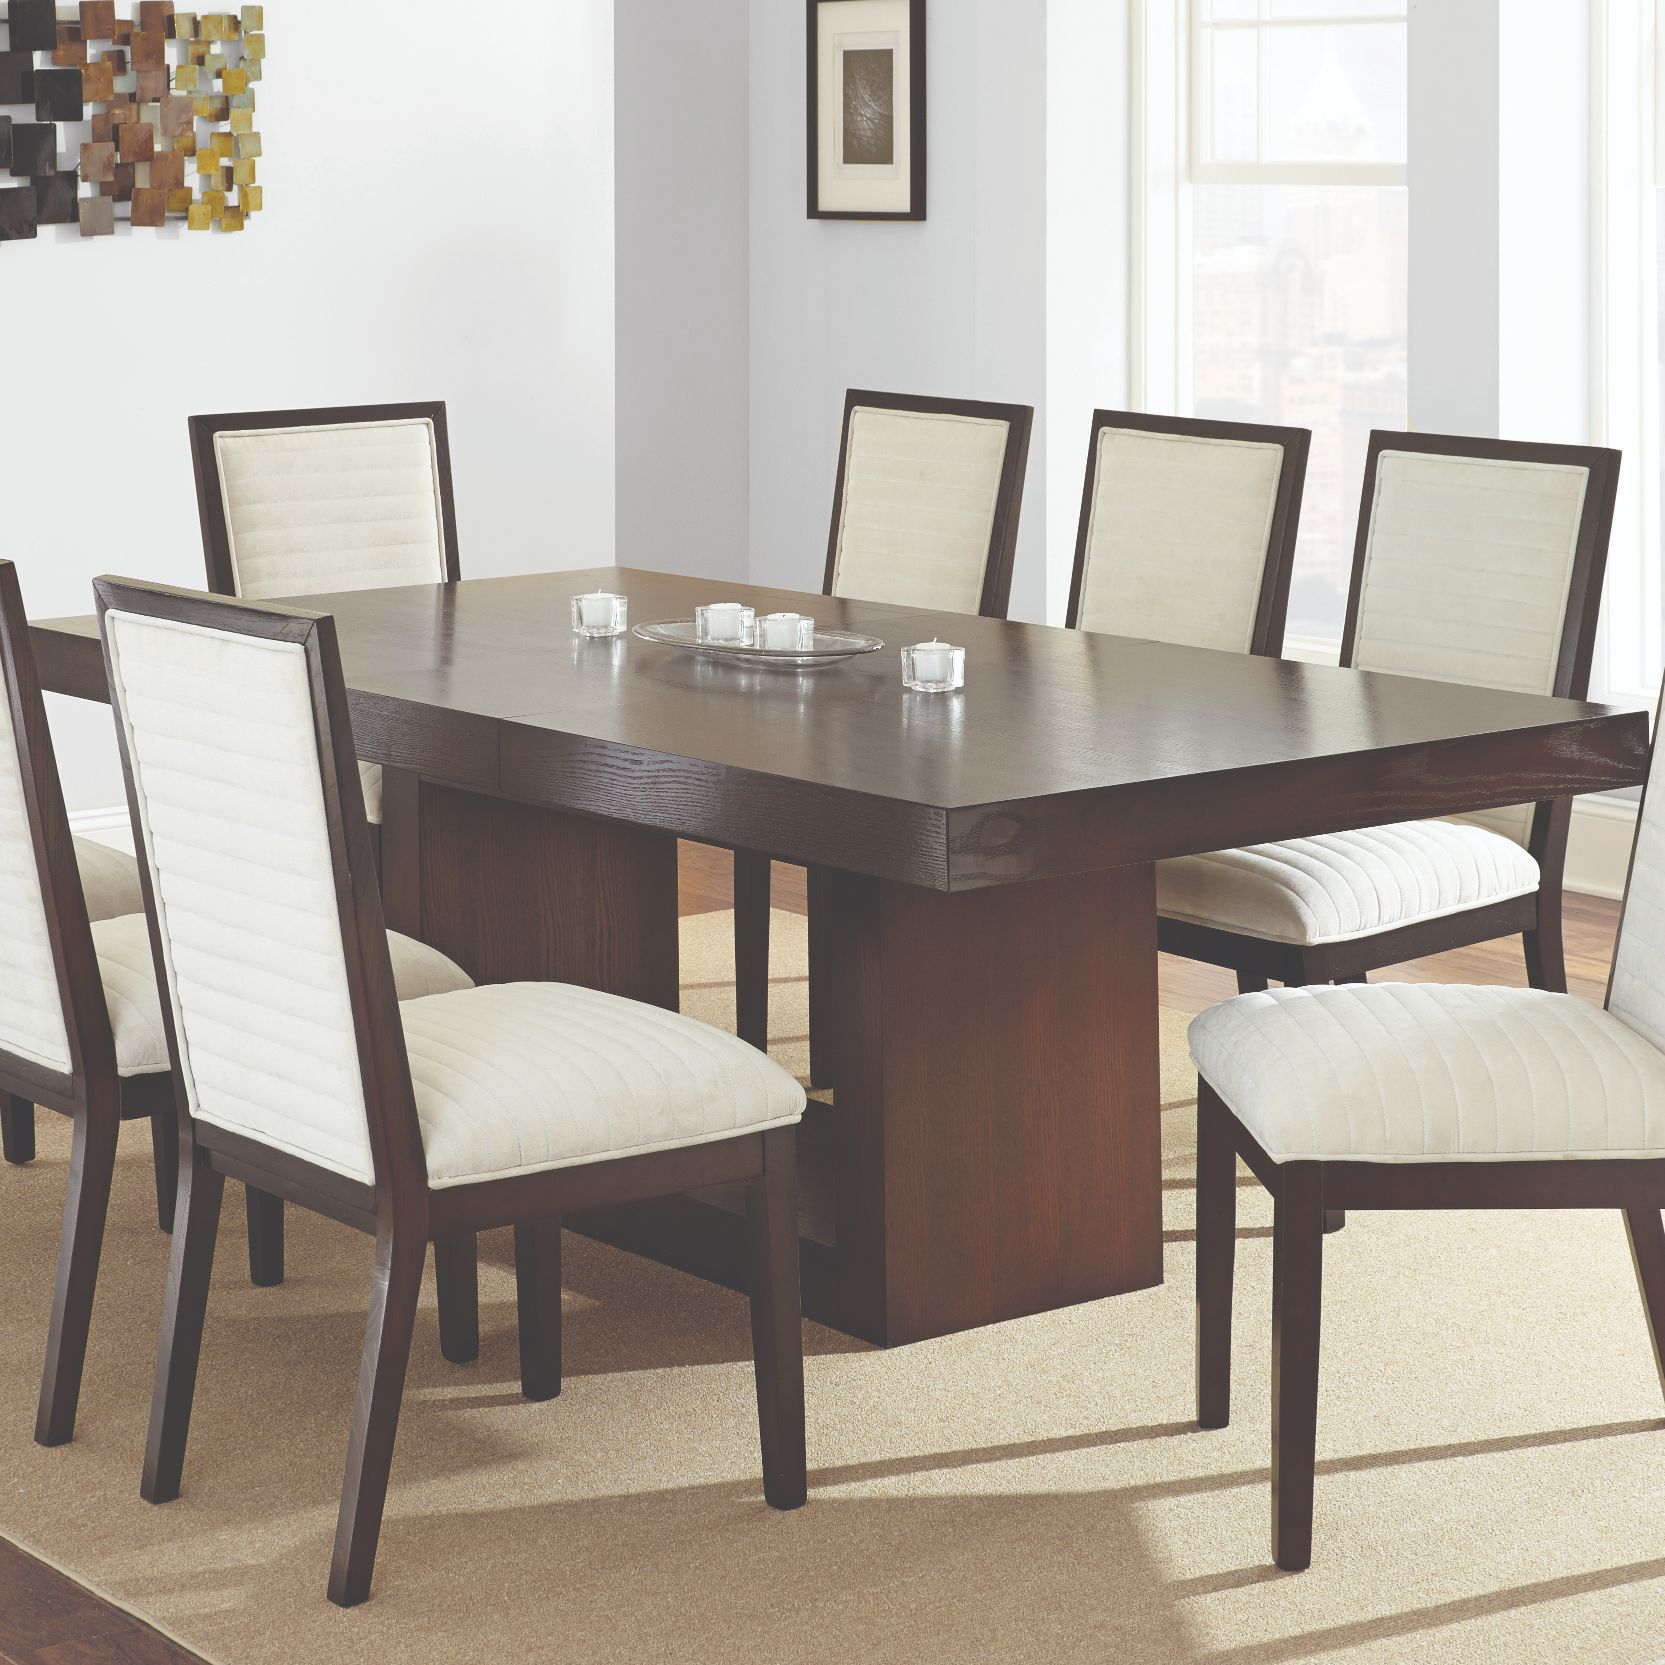 Antonio 7 Pc Dining Set - Beige